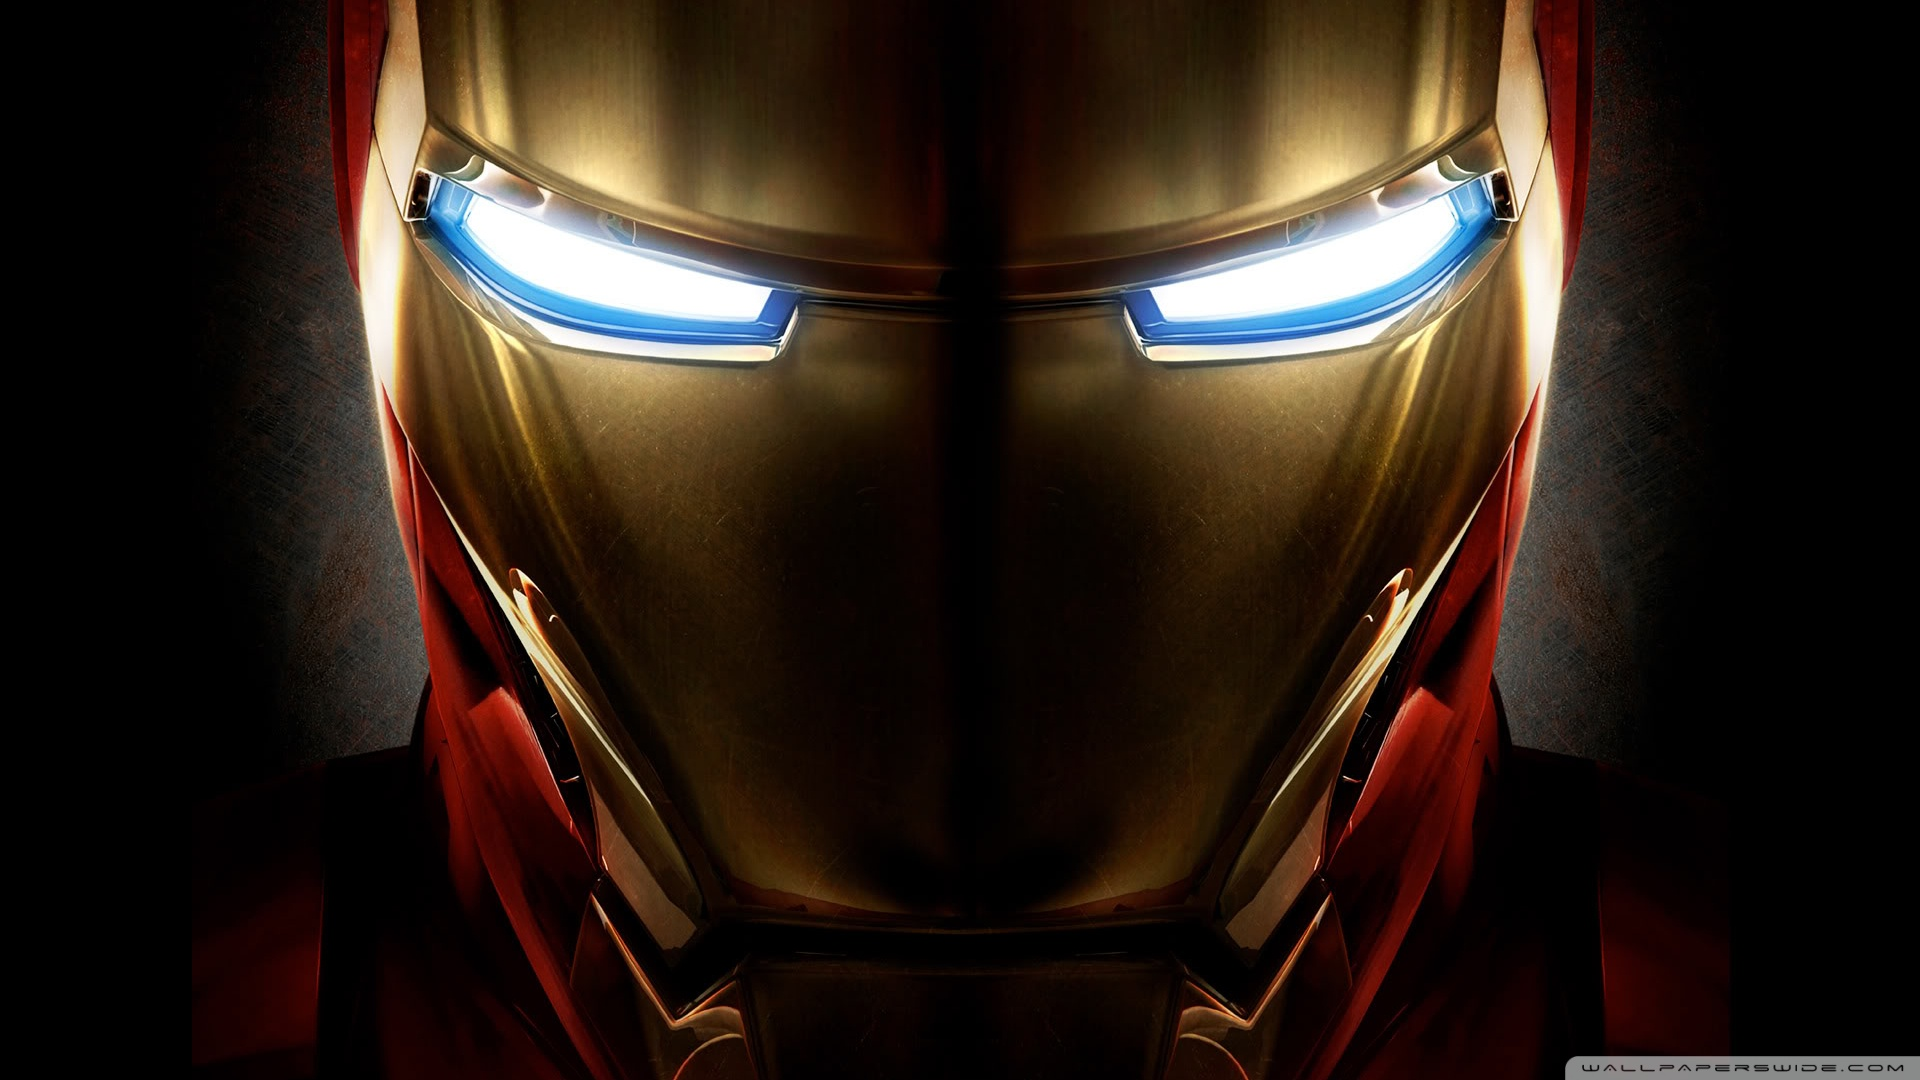 Iron Man Helmet HD Wallpaper Desktop Movie 1920x1080